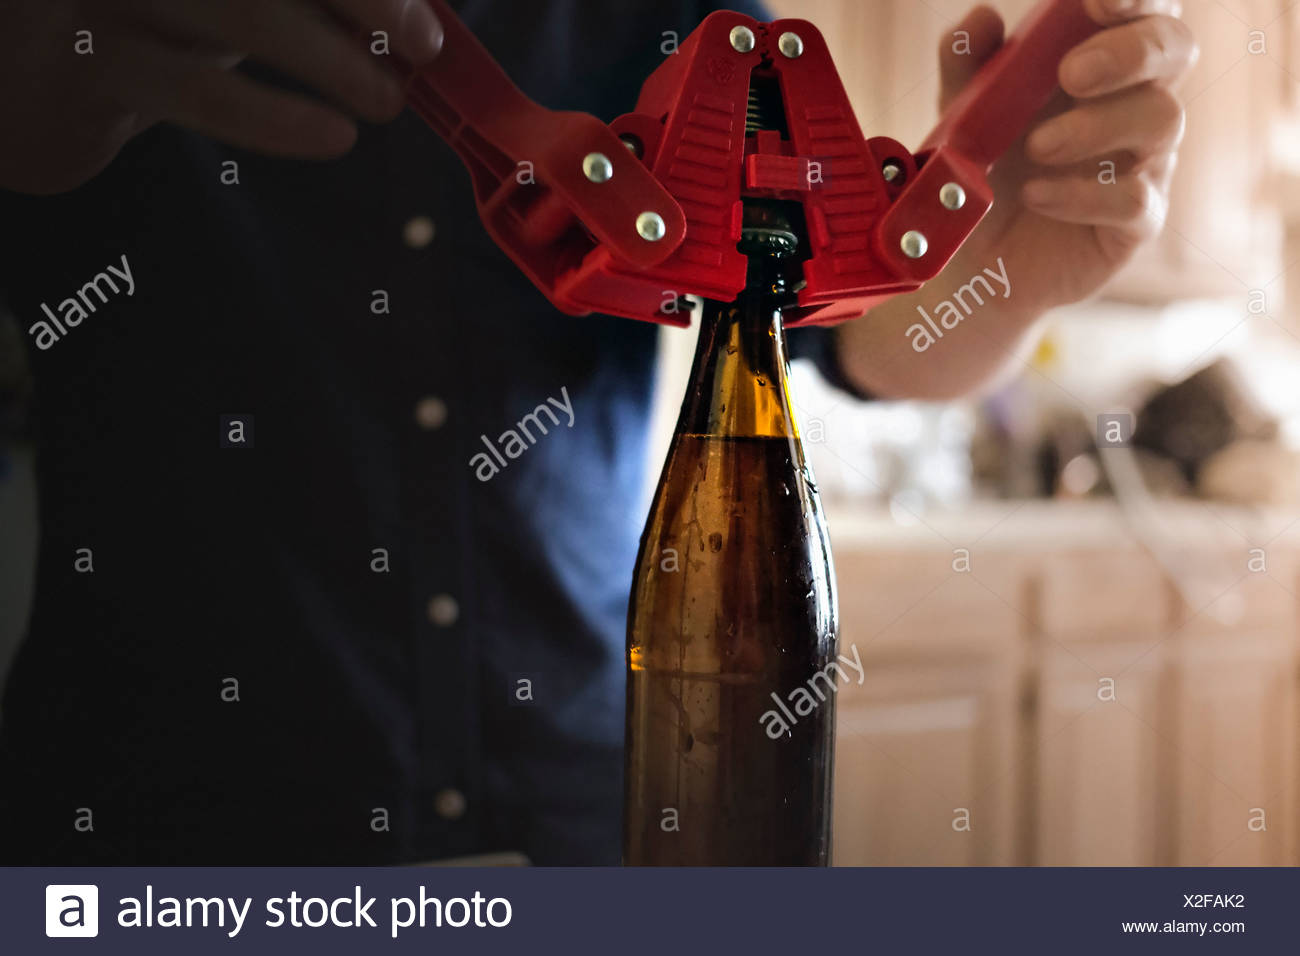 Close up of man using crown corker for closing bottle top of home brew beer - Stock Image